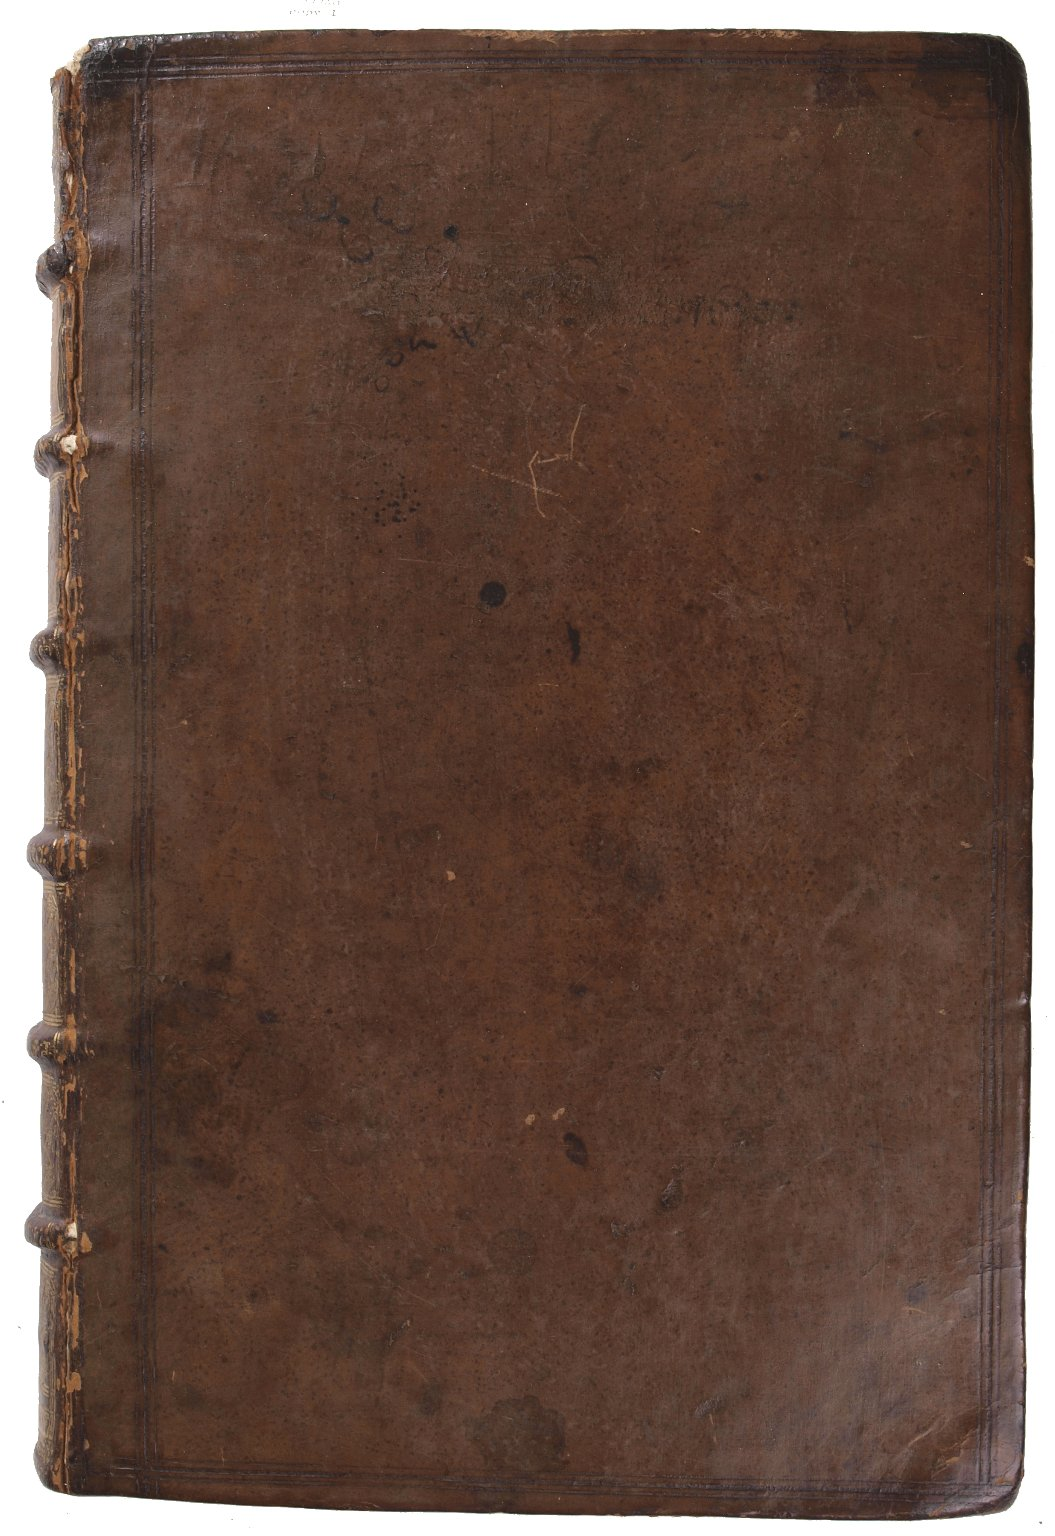 Front cover, STC 23340 c.1.